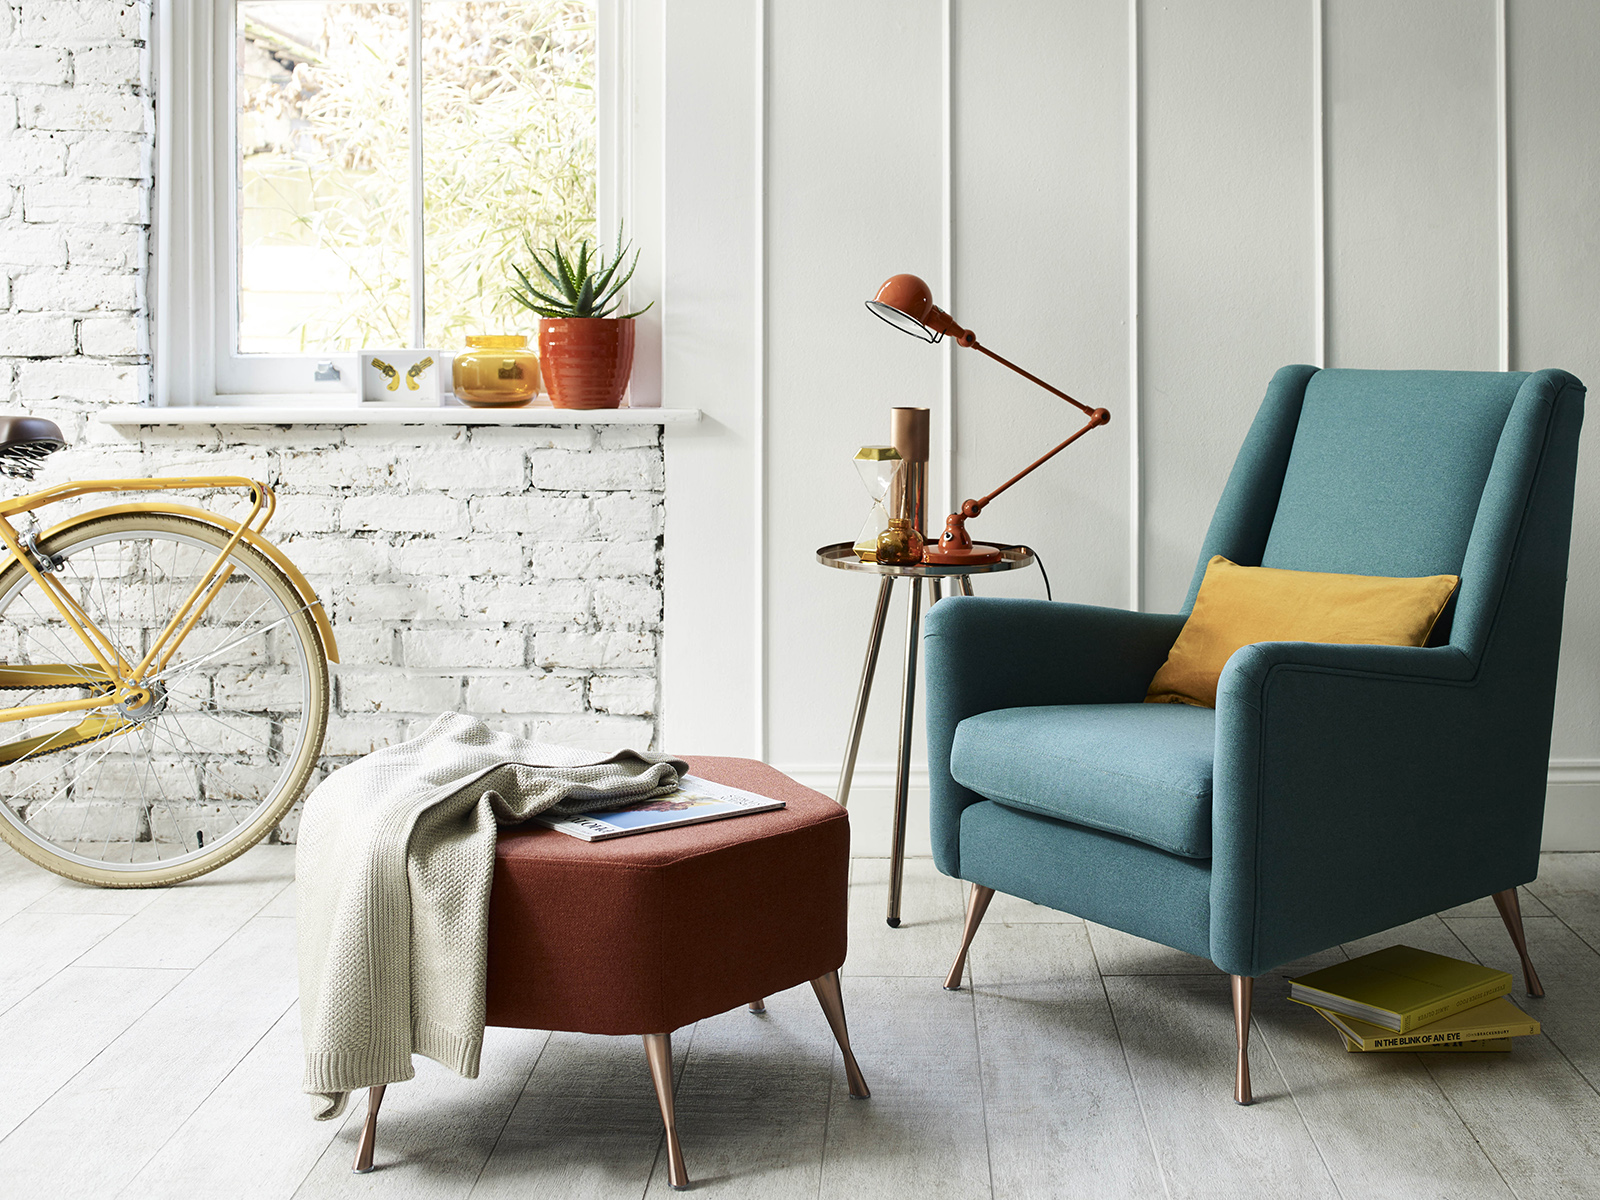 Interior Designer Sophie Robinson advises on how to make small spaces appear bigger. The DFS Capsule collection features furniture with slender arms, space-saving proportions and can come apart for easy access. #sophierobinson #smallspaceliving #dfs